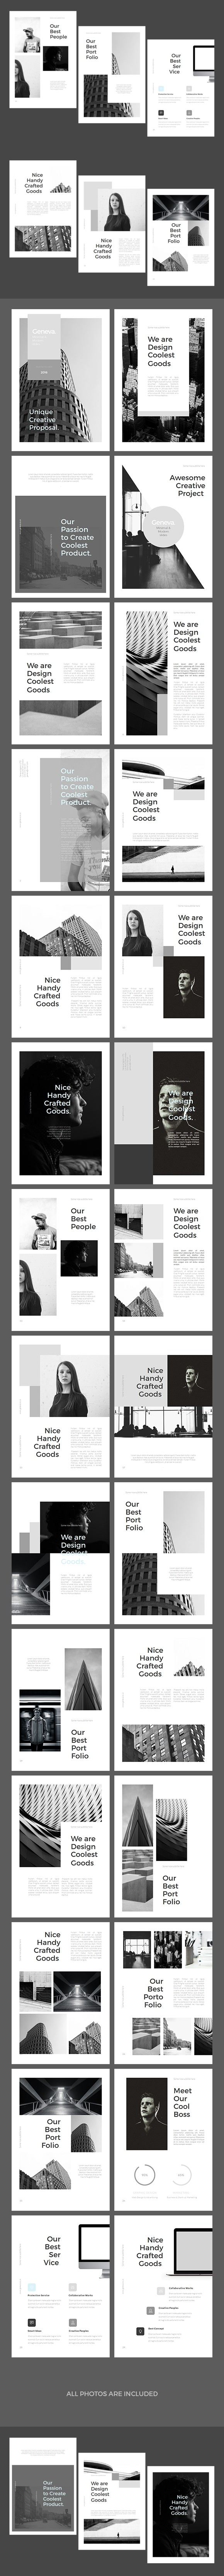 A4 powerpoint template for print presentation templates powerpoint template for print 665682 minimal and modern powerpoint slides for your kickass presentation is ready to print no need indesign and photoshop toneelgroepblik Image collections